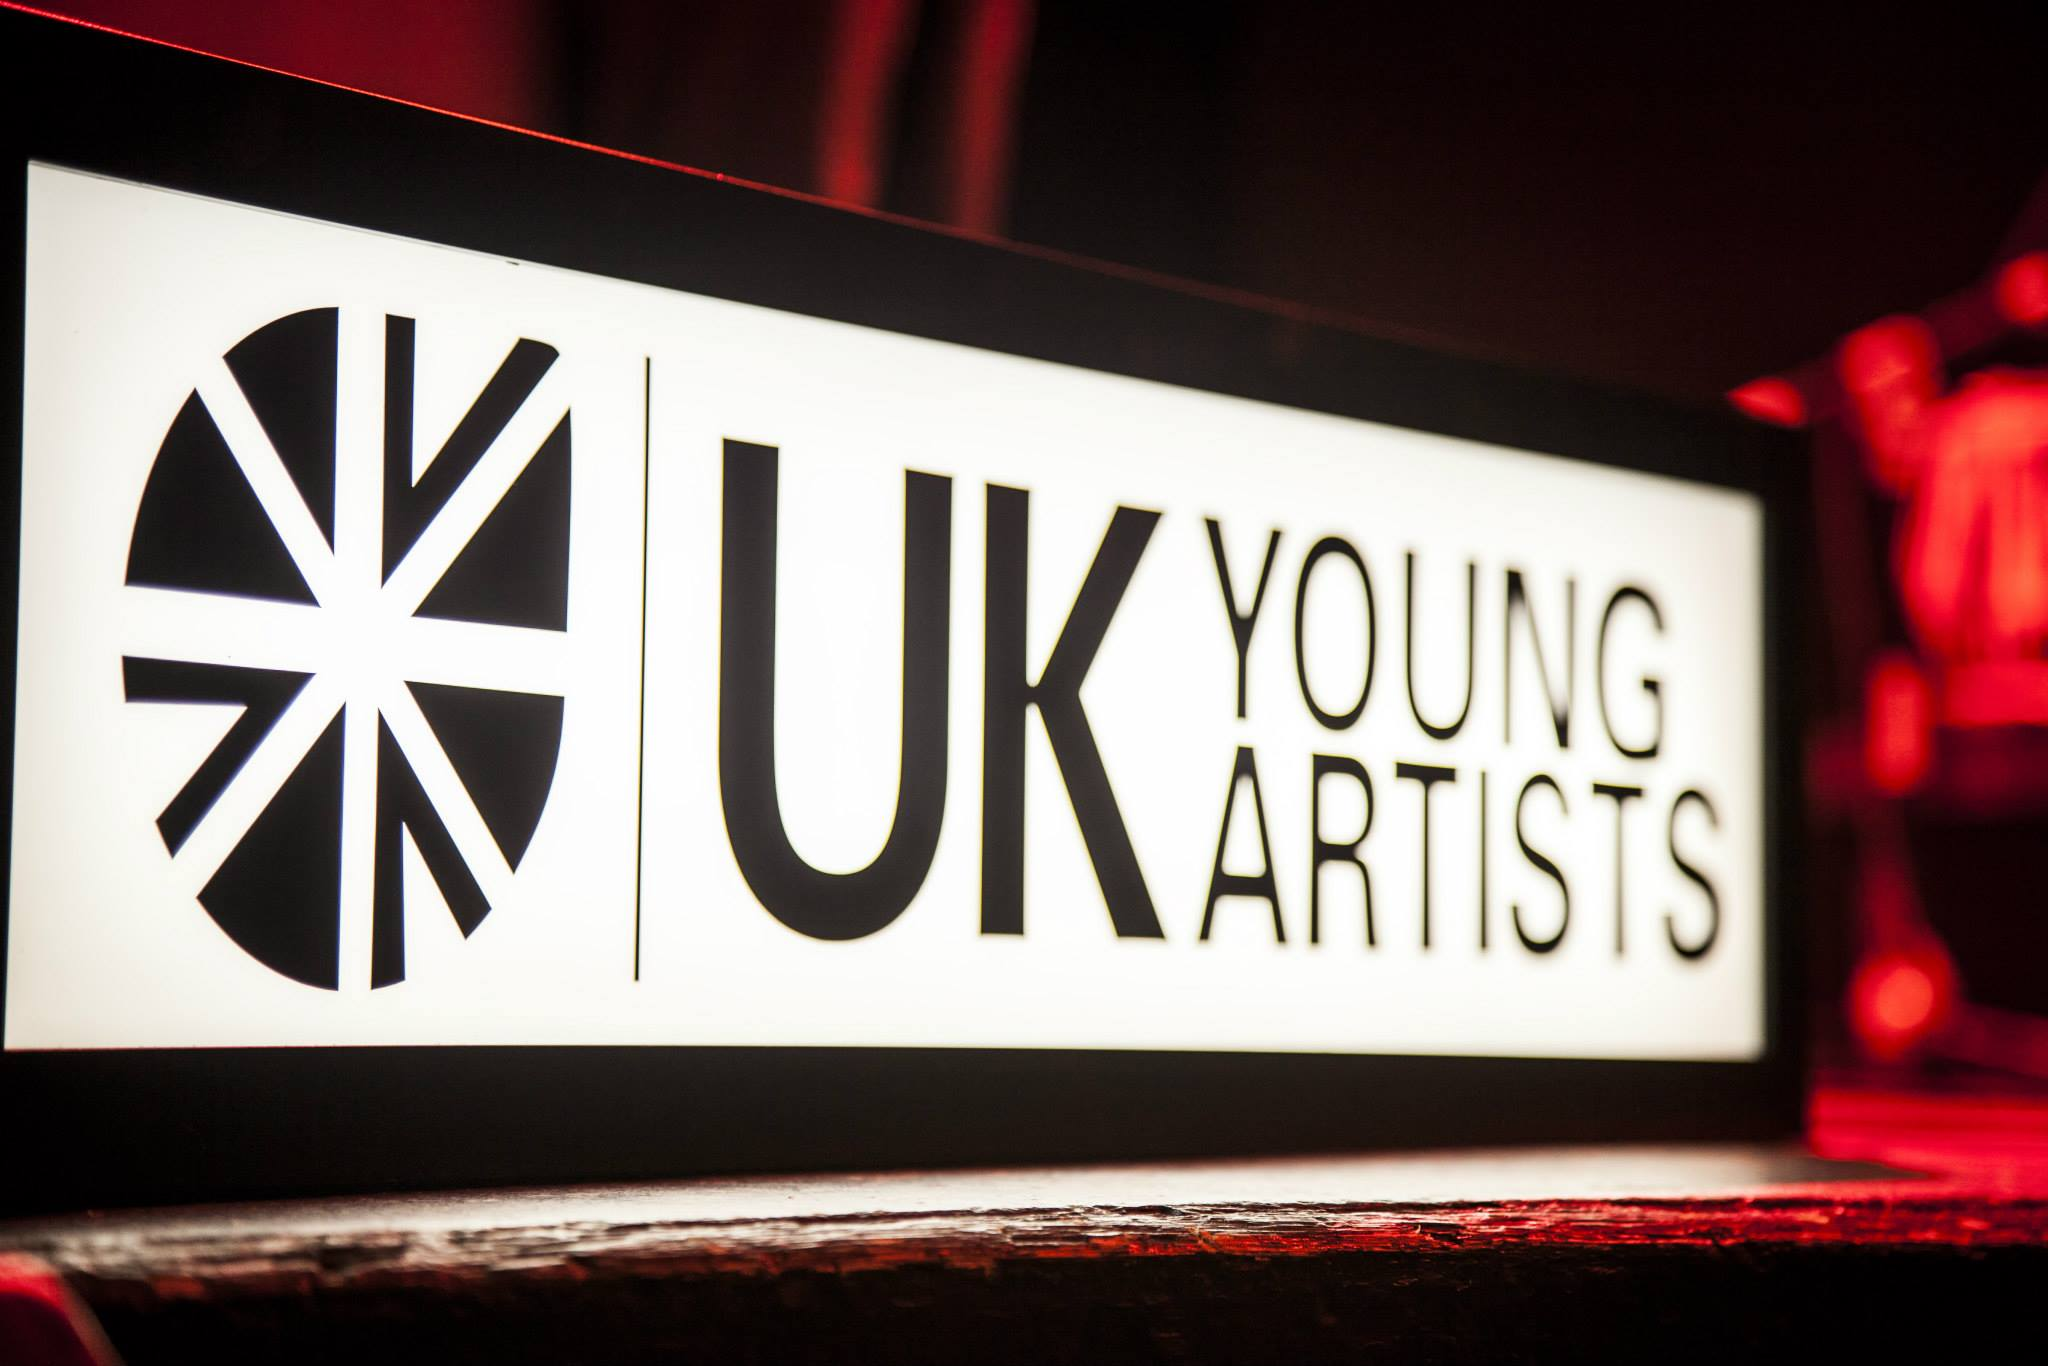 UK Young Artists